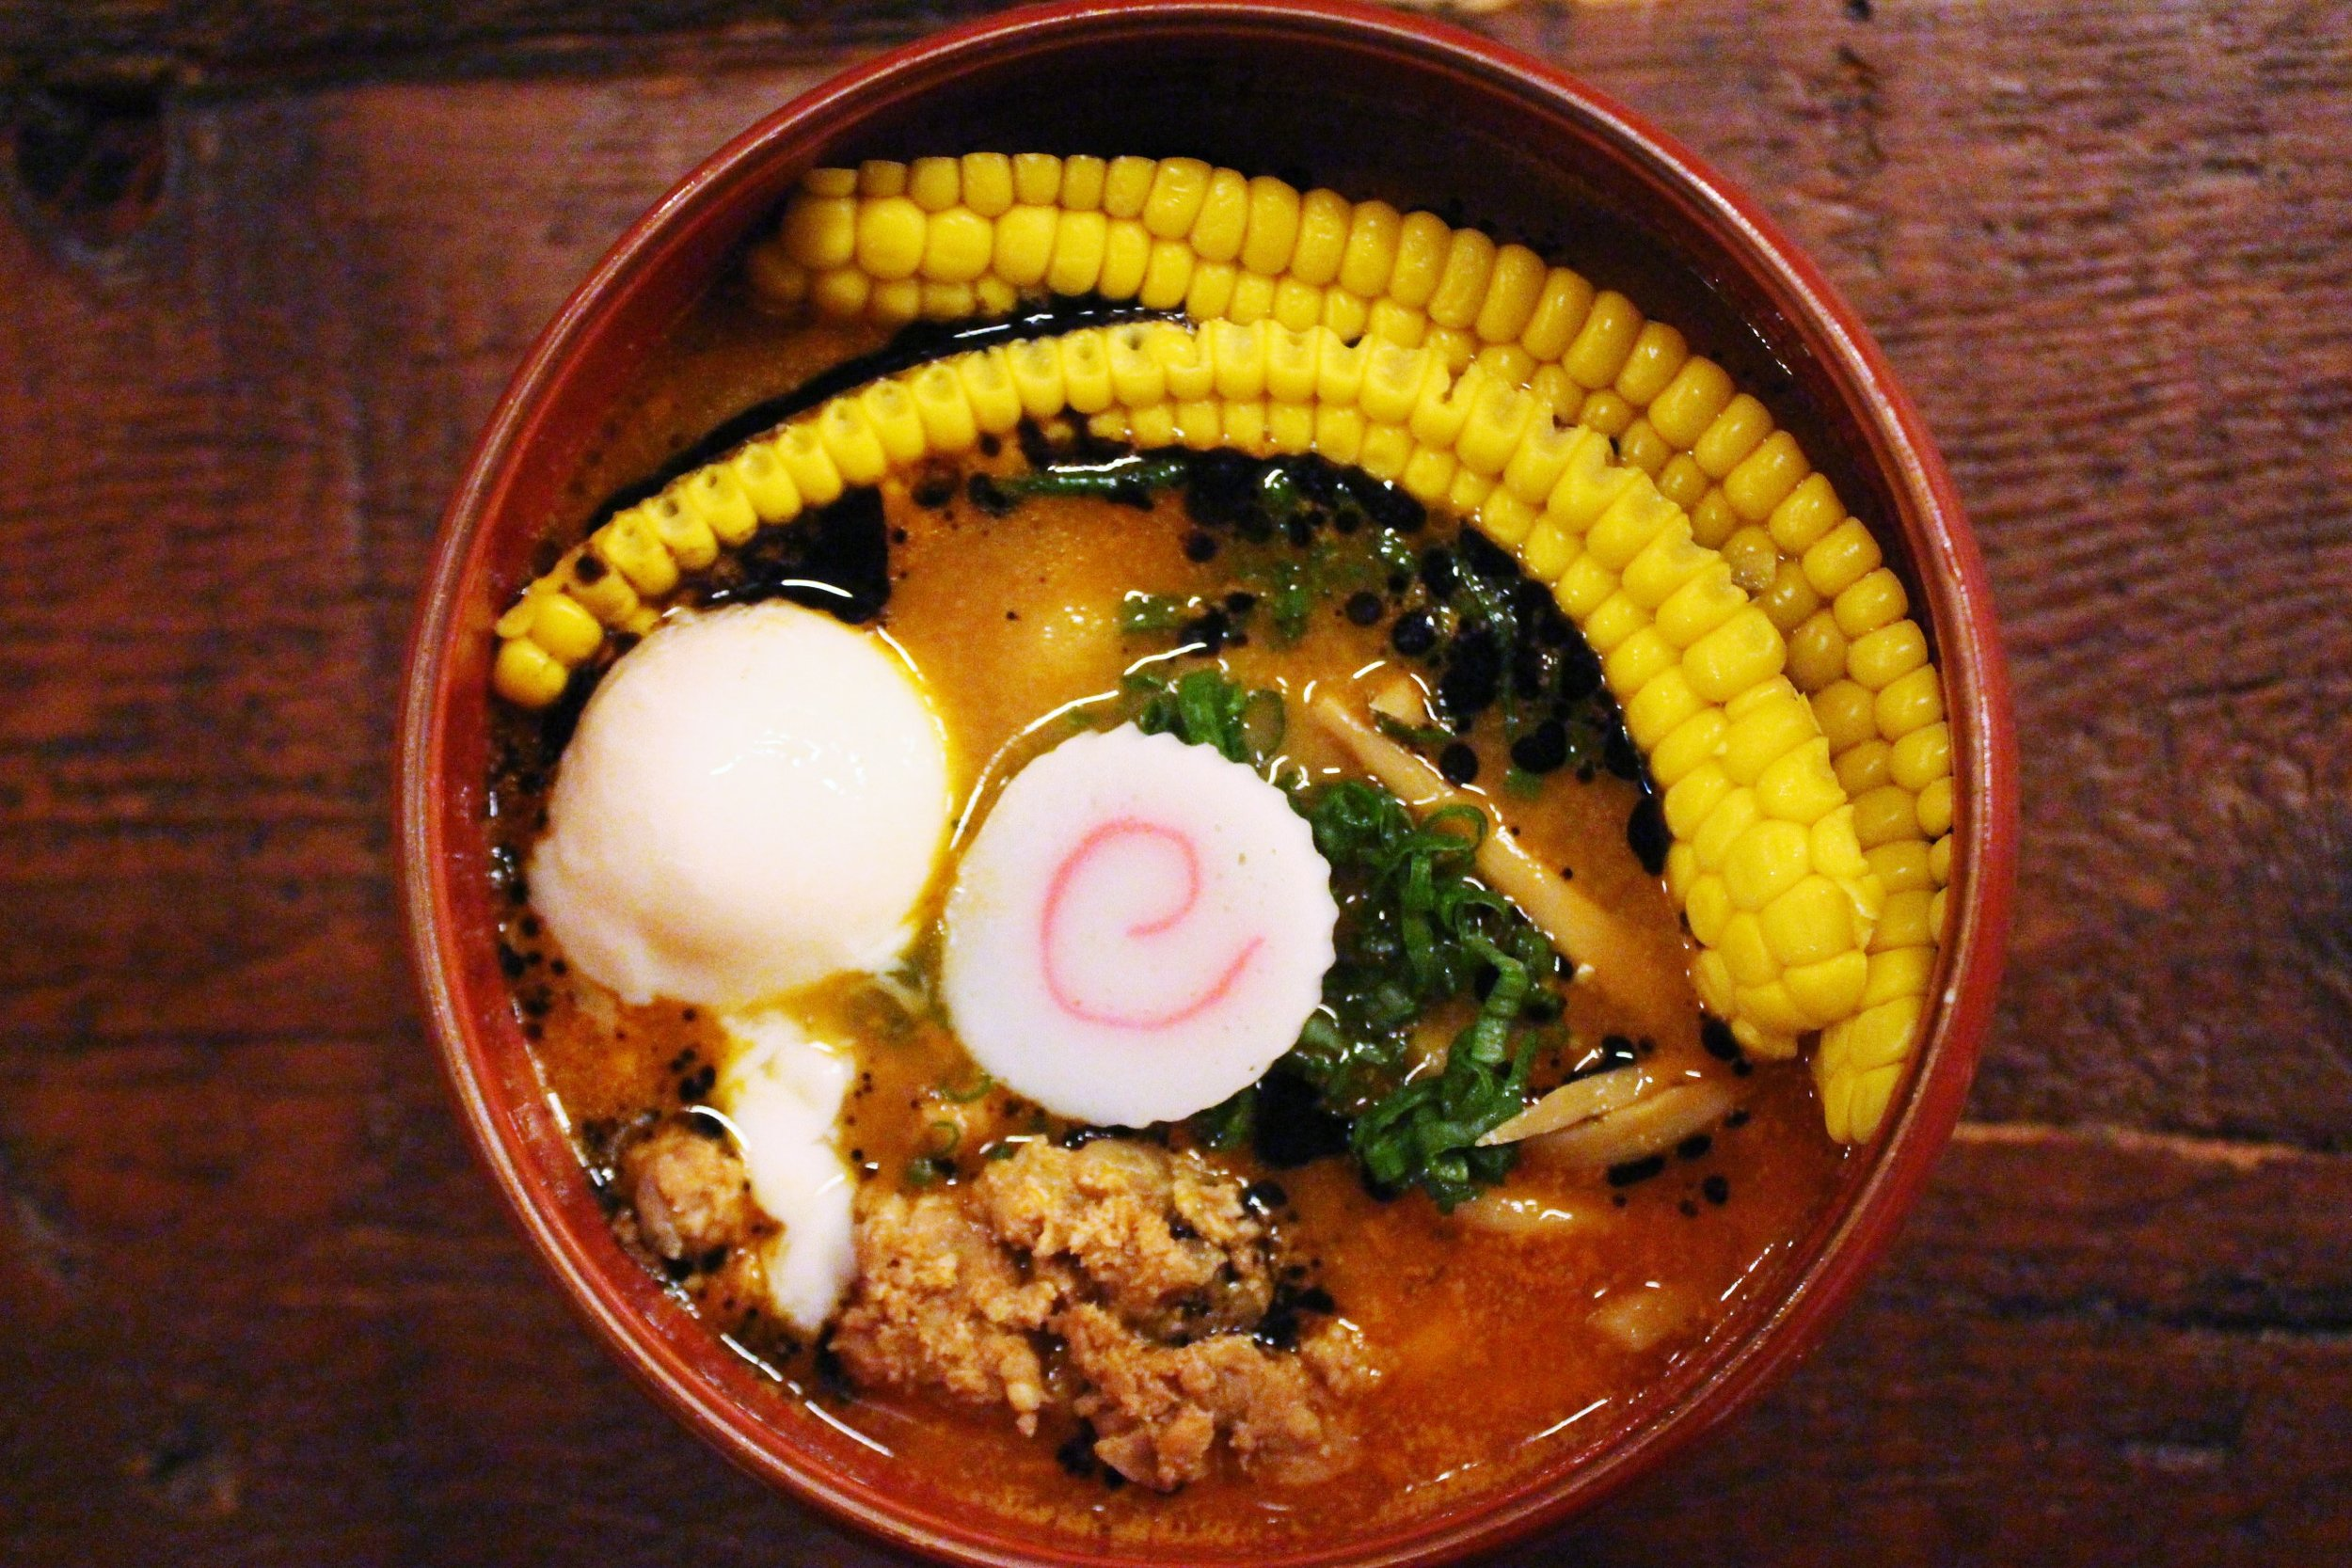 Spicy Miso Ramen: Red Miso and Pork Based Soup at Mu Ramen